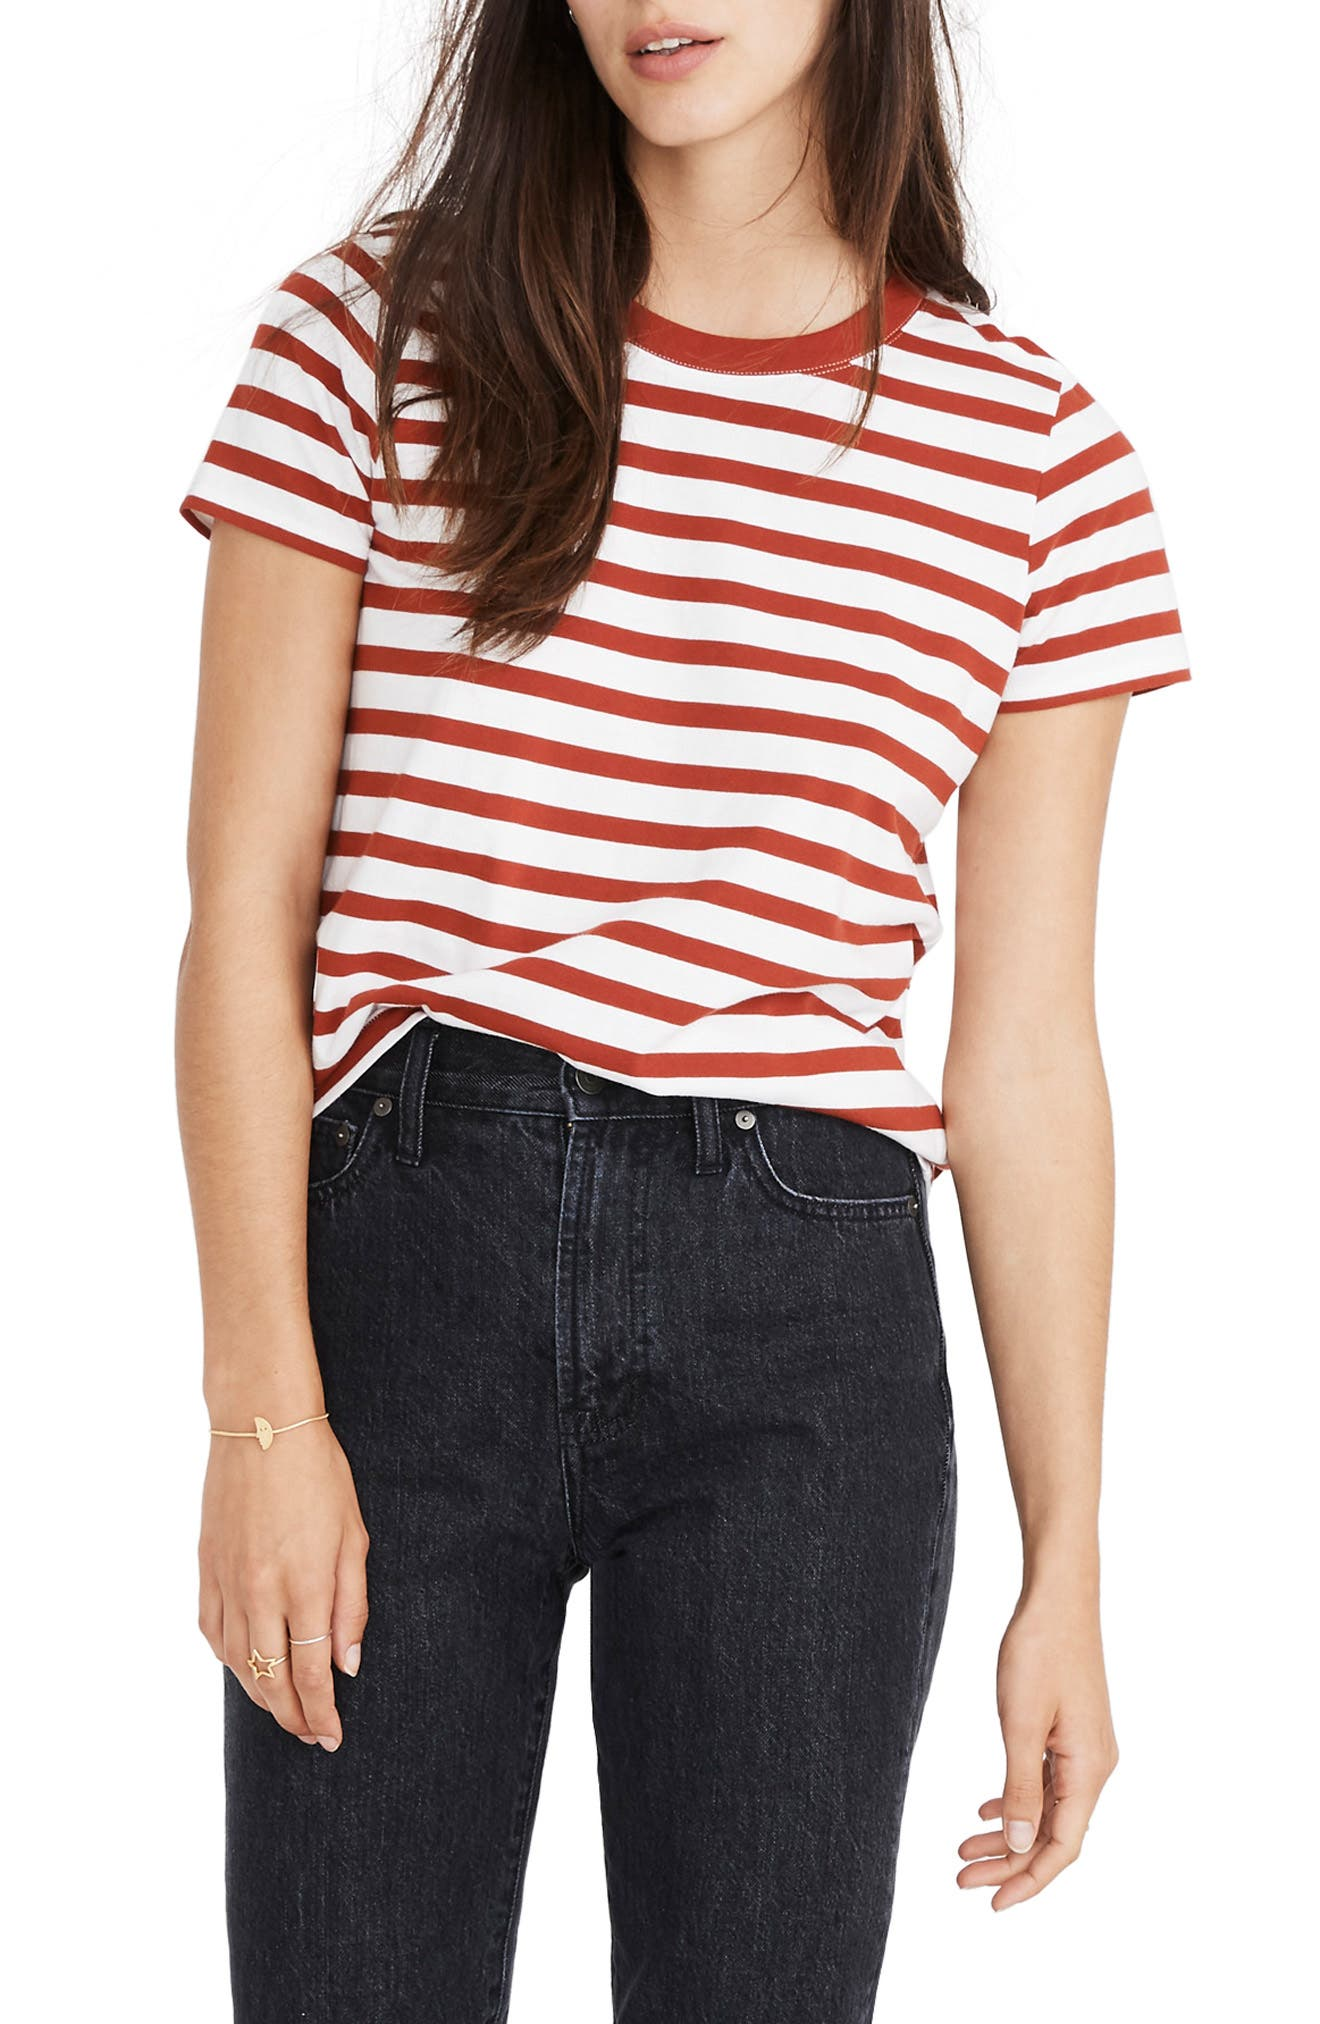 1930s Style Blouses, Shirts, Tops | Vintage Blouses Womens Madewell Northside Vintage Stripe Tee $18.50 AT vintagedancer.com